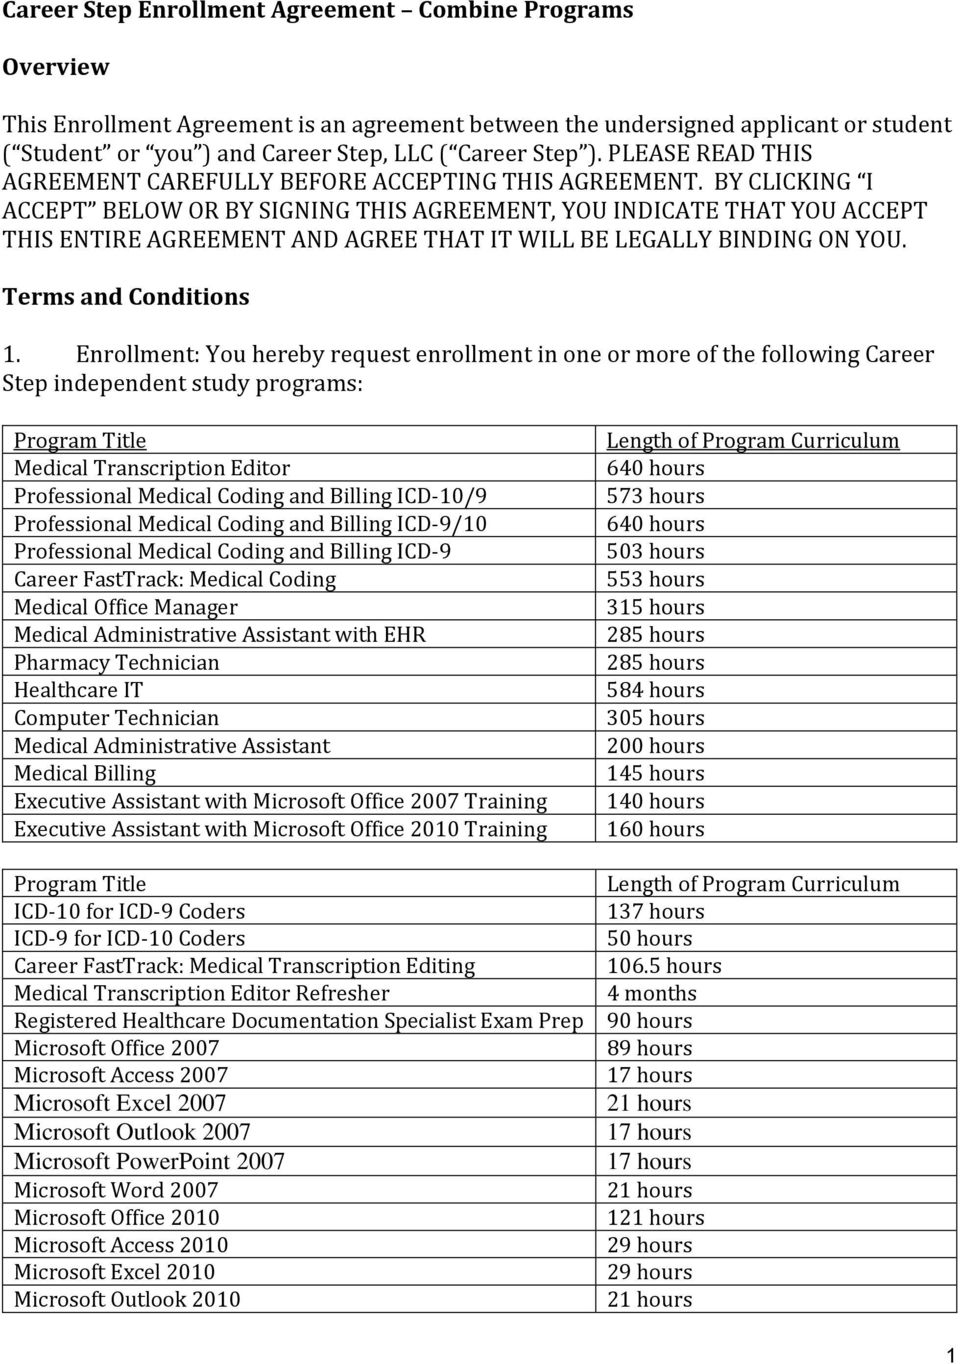 Career Step Enrollment Agreement Combine Programs Overview Pdf